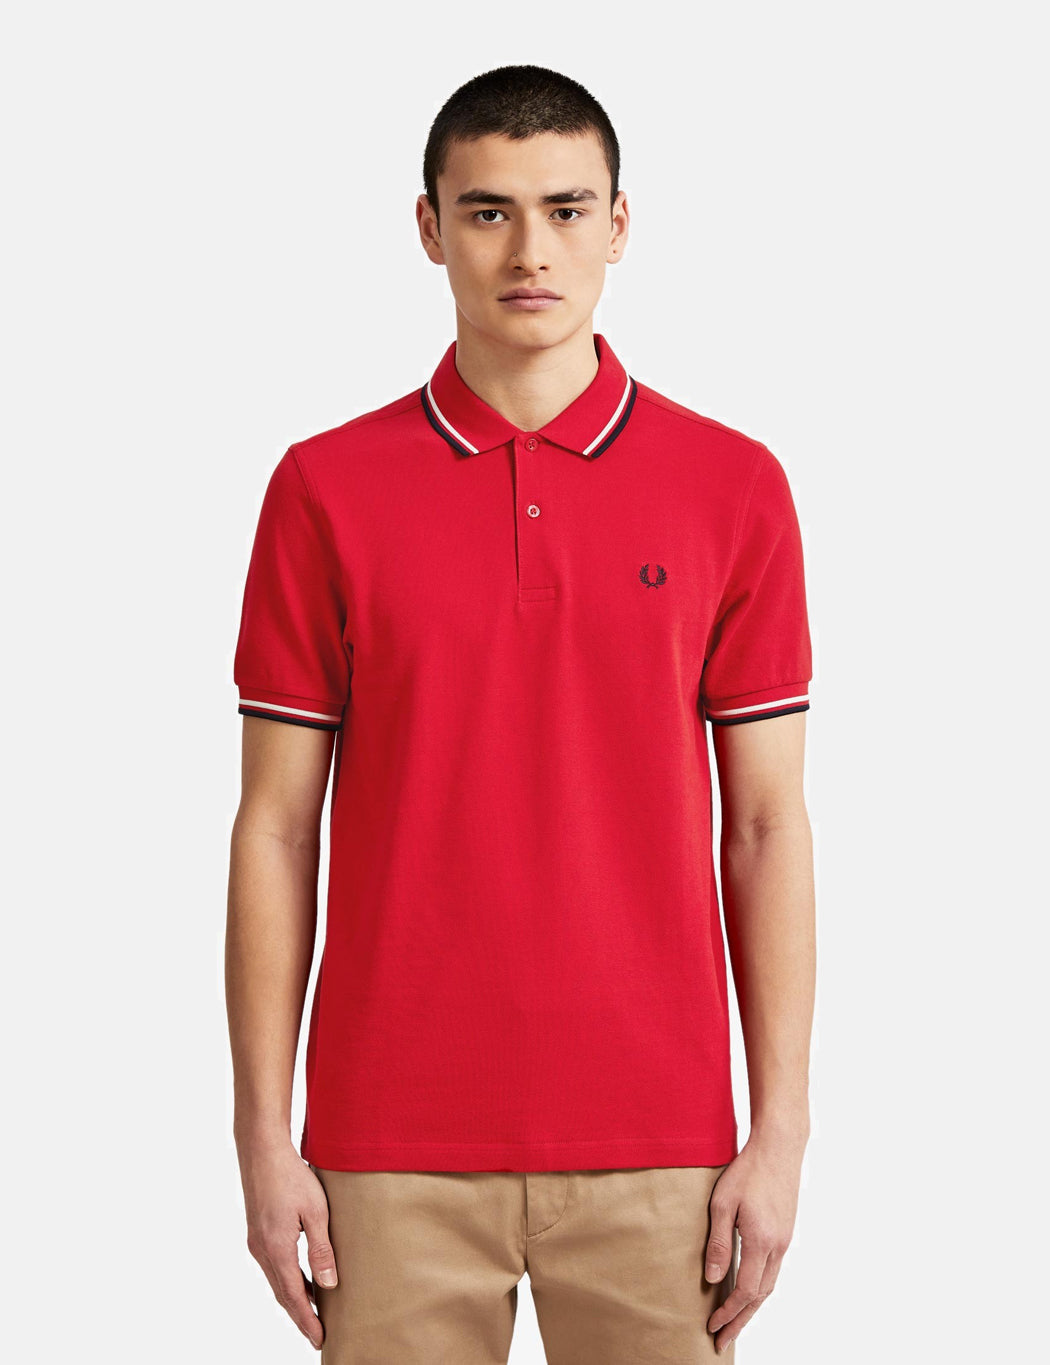 7df1f5b9 Fred Perry Twin Tipped Polo Shirt - Winter Red/Snow White/Navy ...